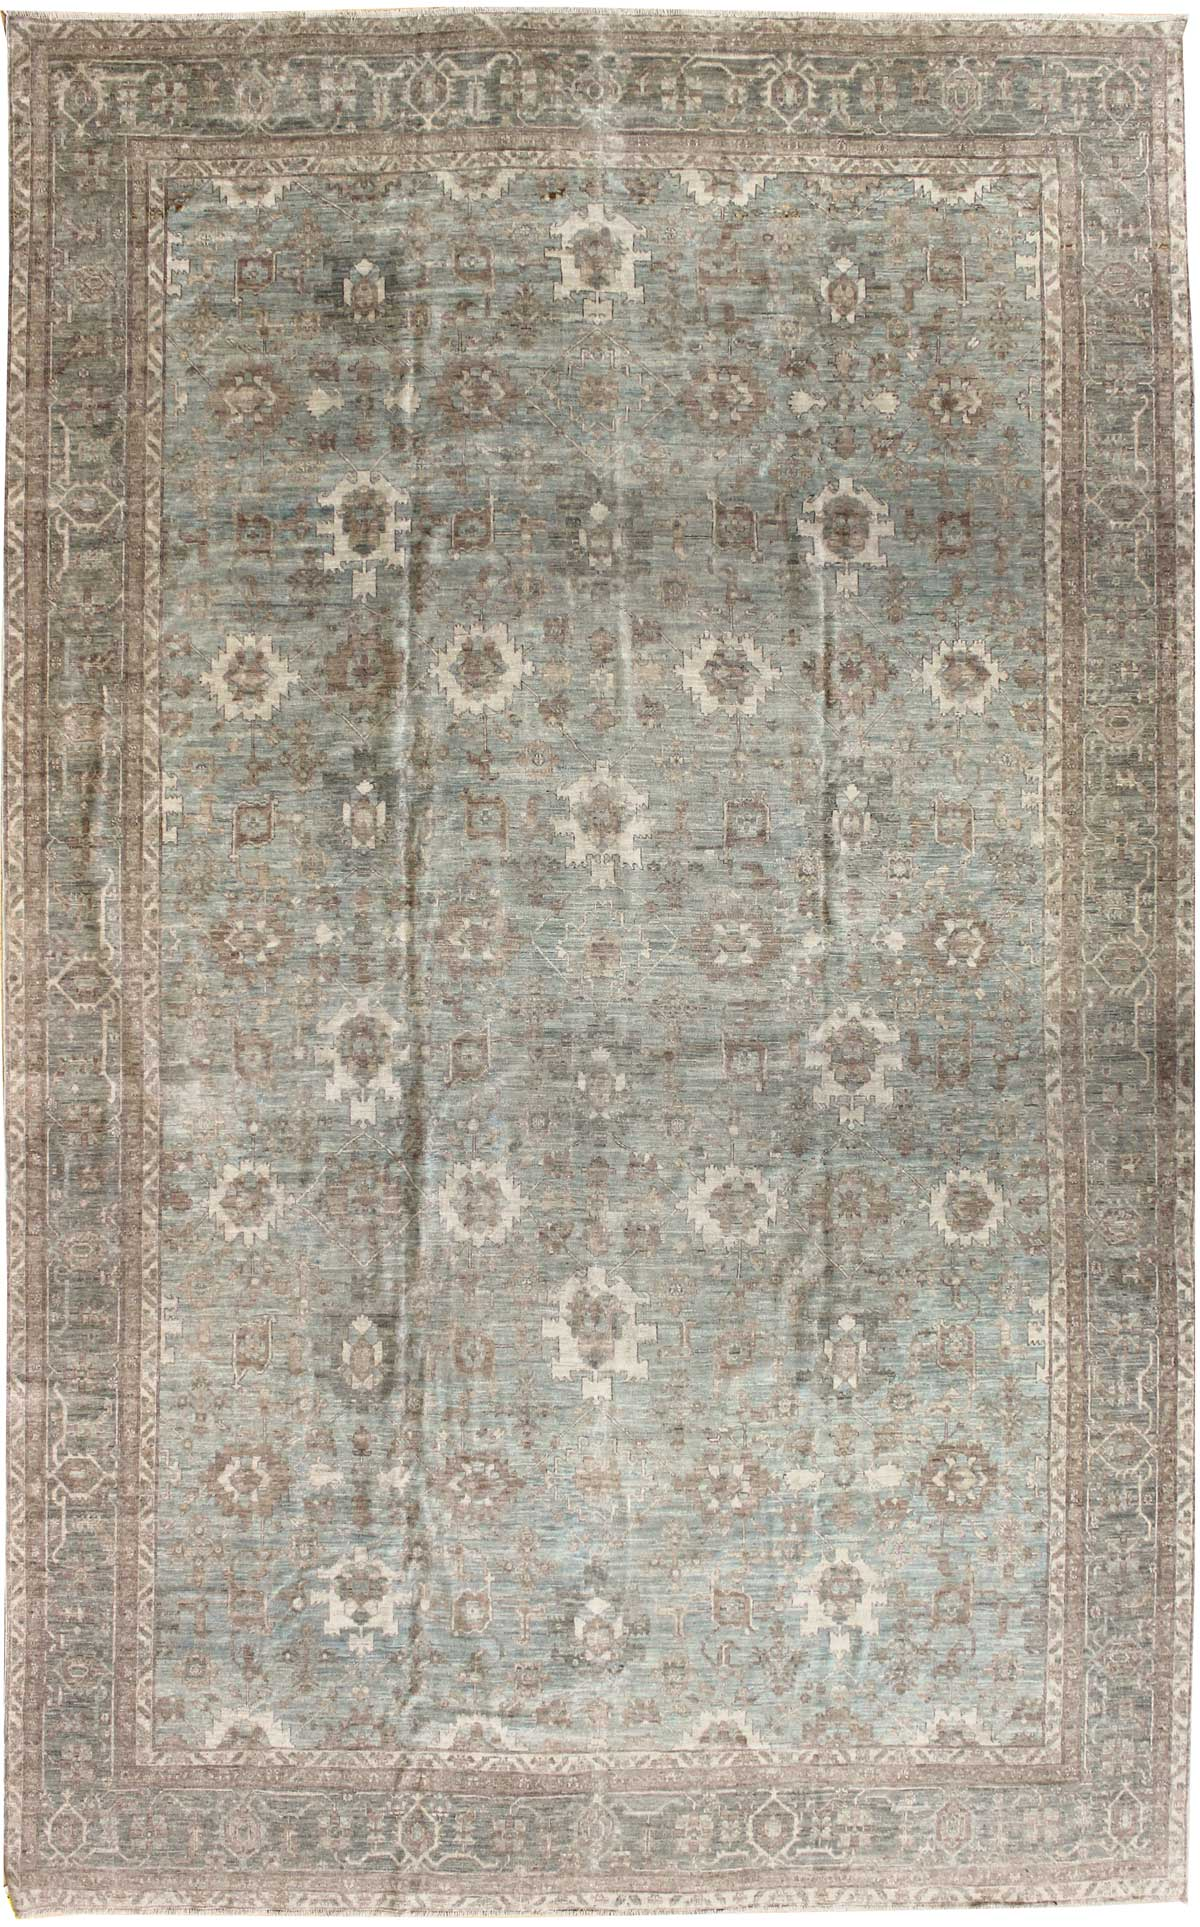 Harshang Handwoven Traditional Rug